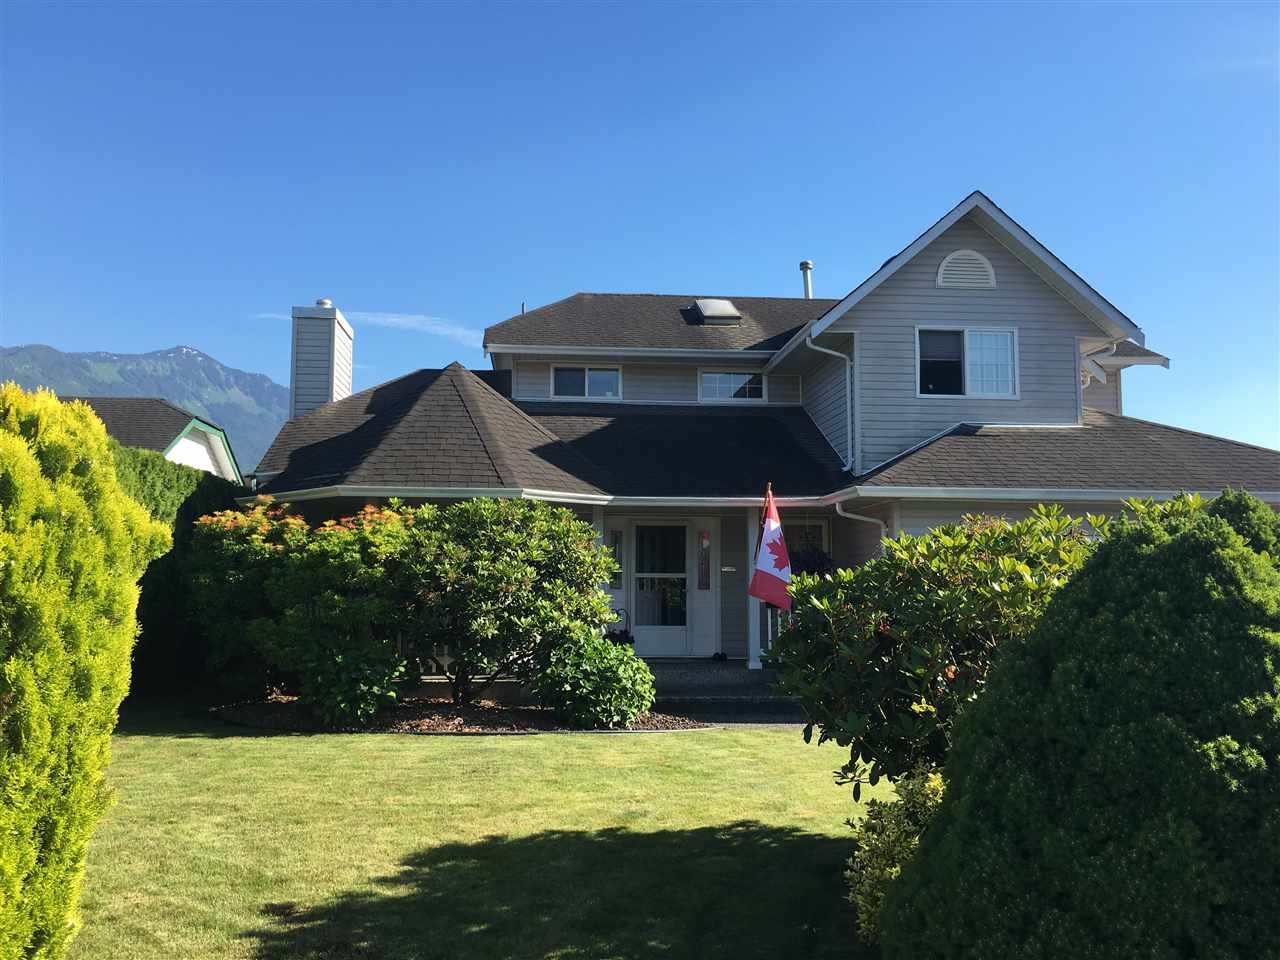 Photo 2: 7474 ARBUTUS Drive: Agassiz House for sale : MLS® # R2185830